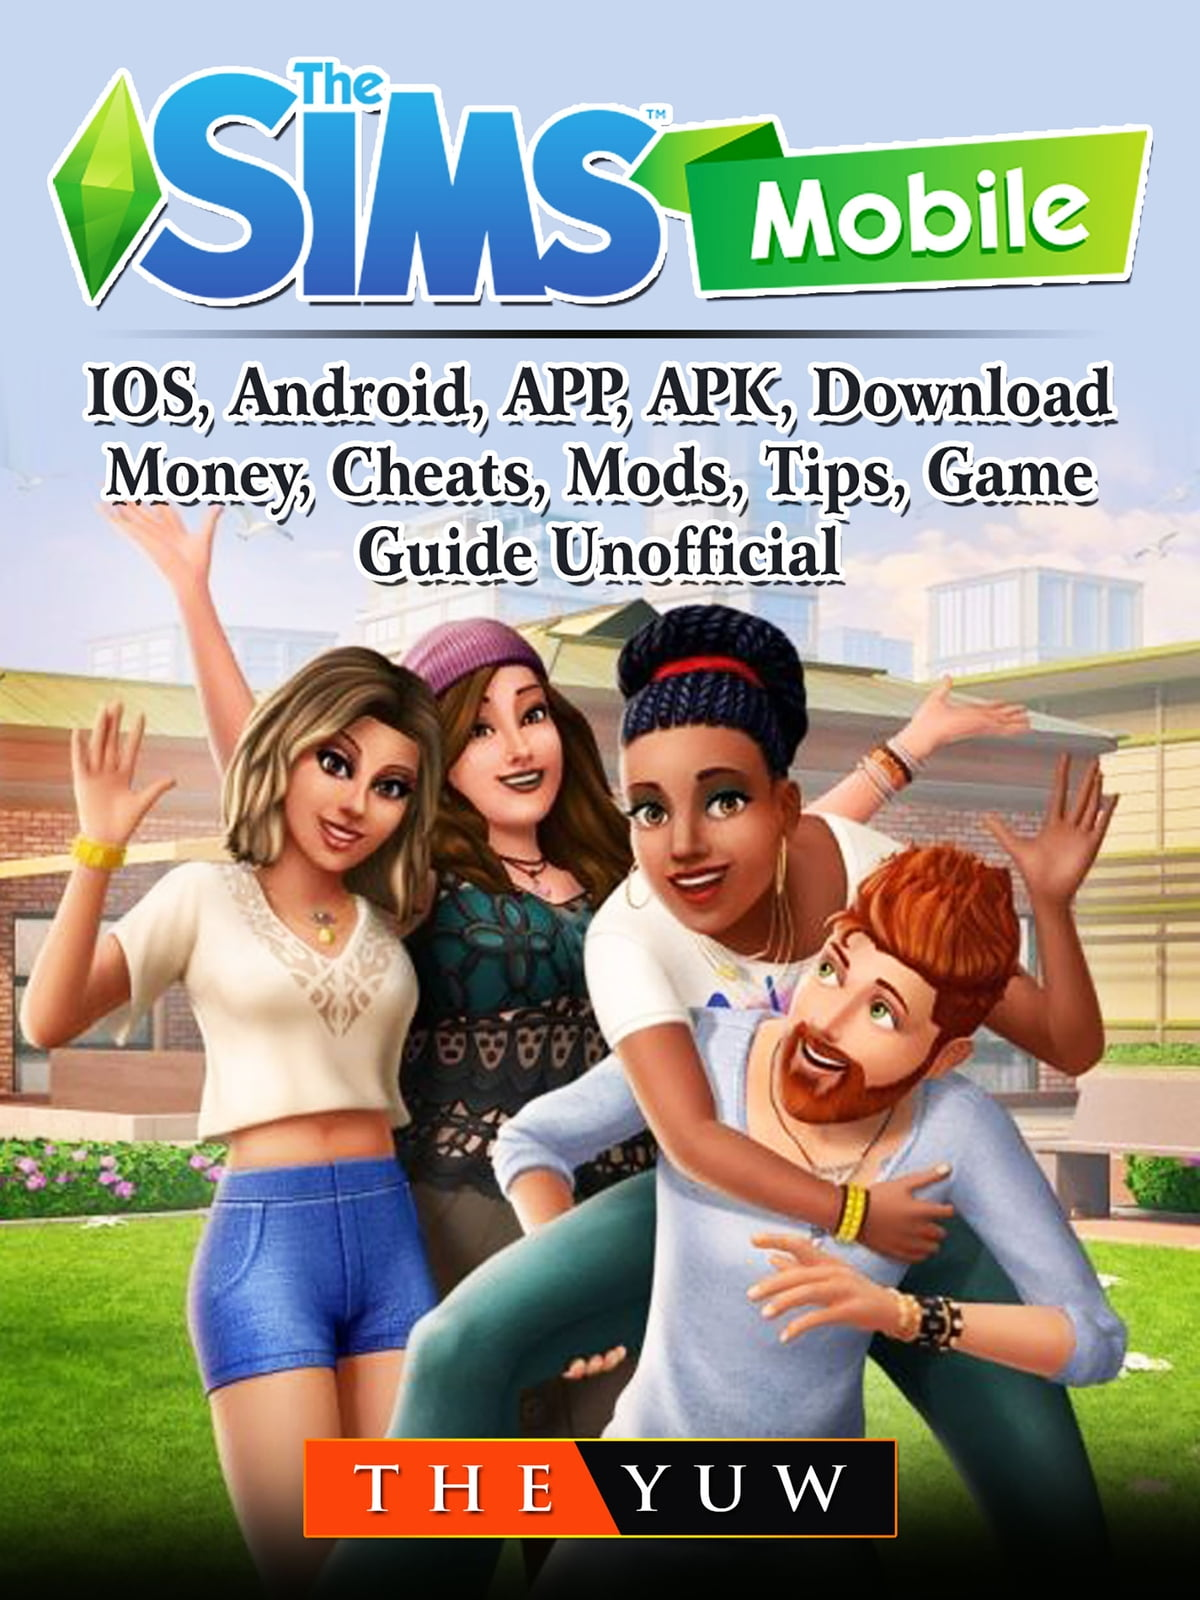 The Sims Mobile, IOS, Android, APP, APK, Download, Money, Cheats, Mods,  Tips, Game Guide Unofficial ebook by The Yuw - Rakuten Kobo